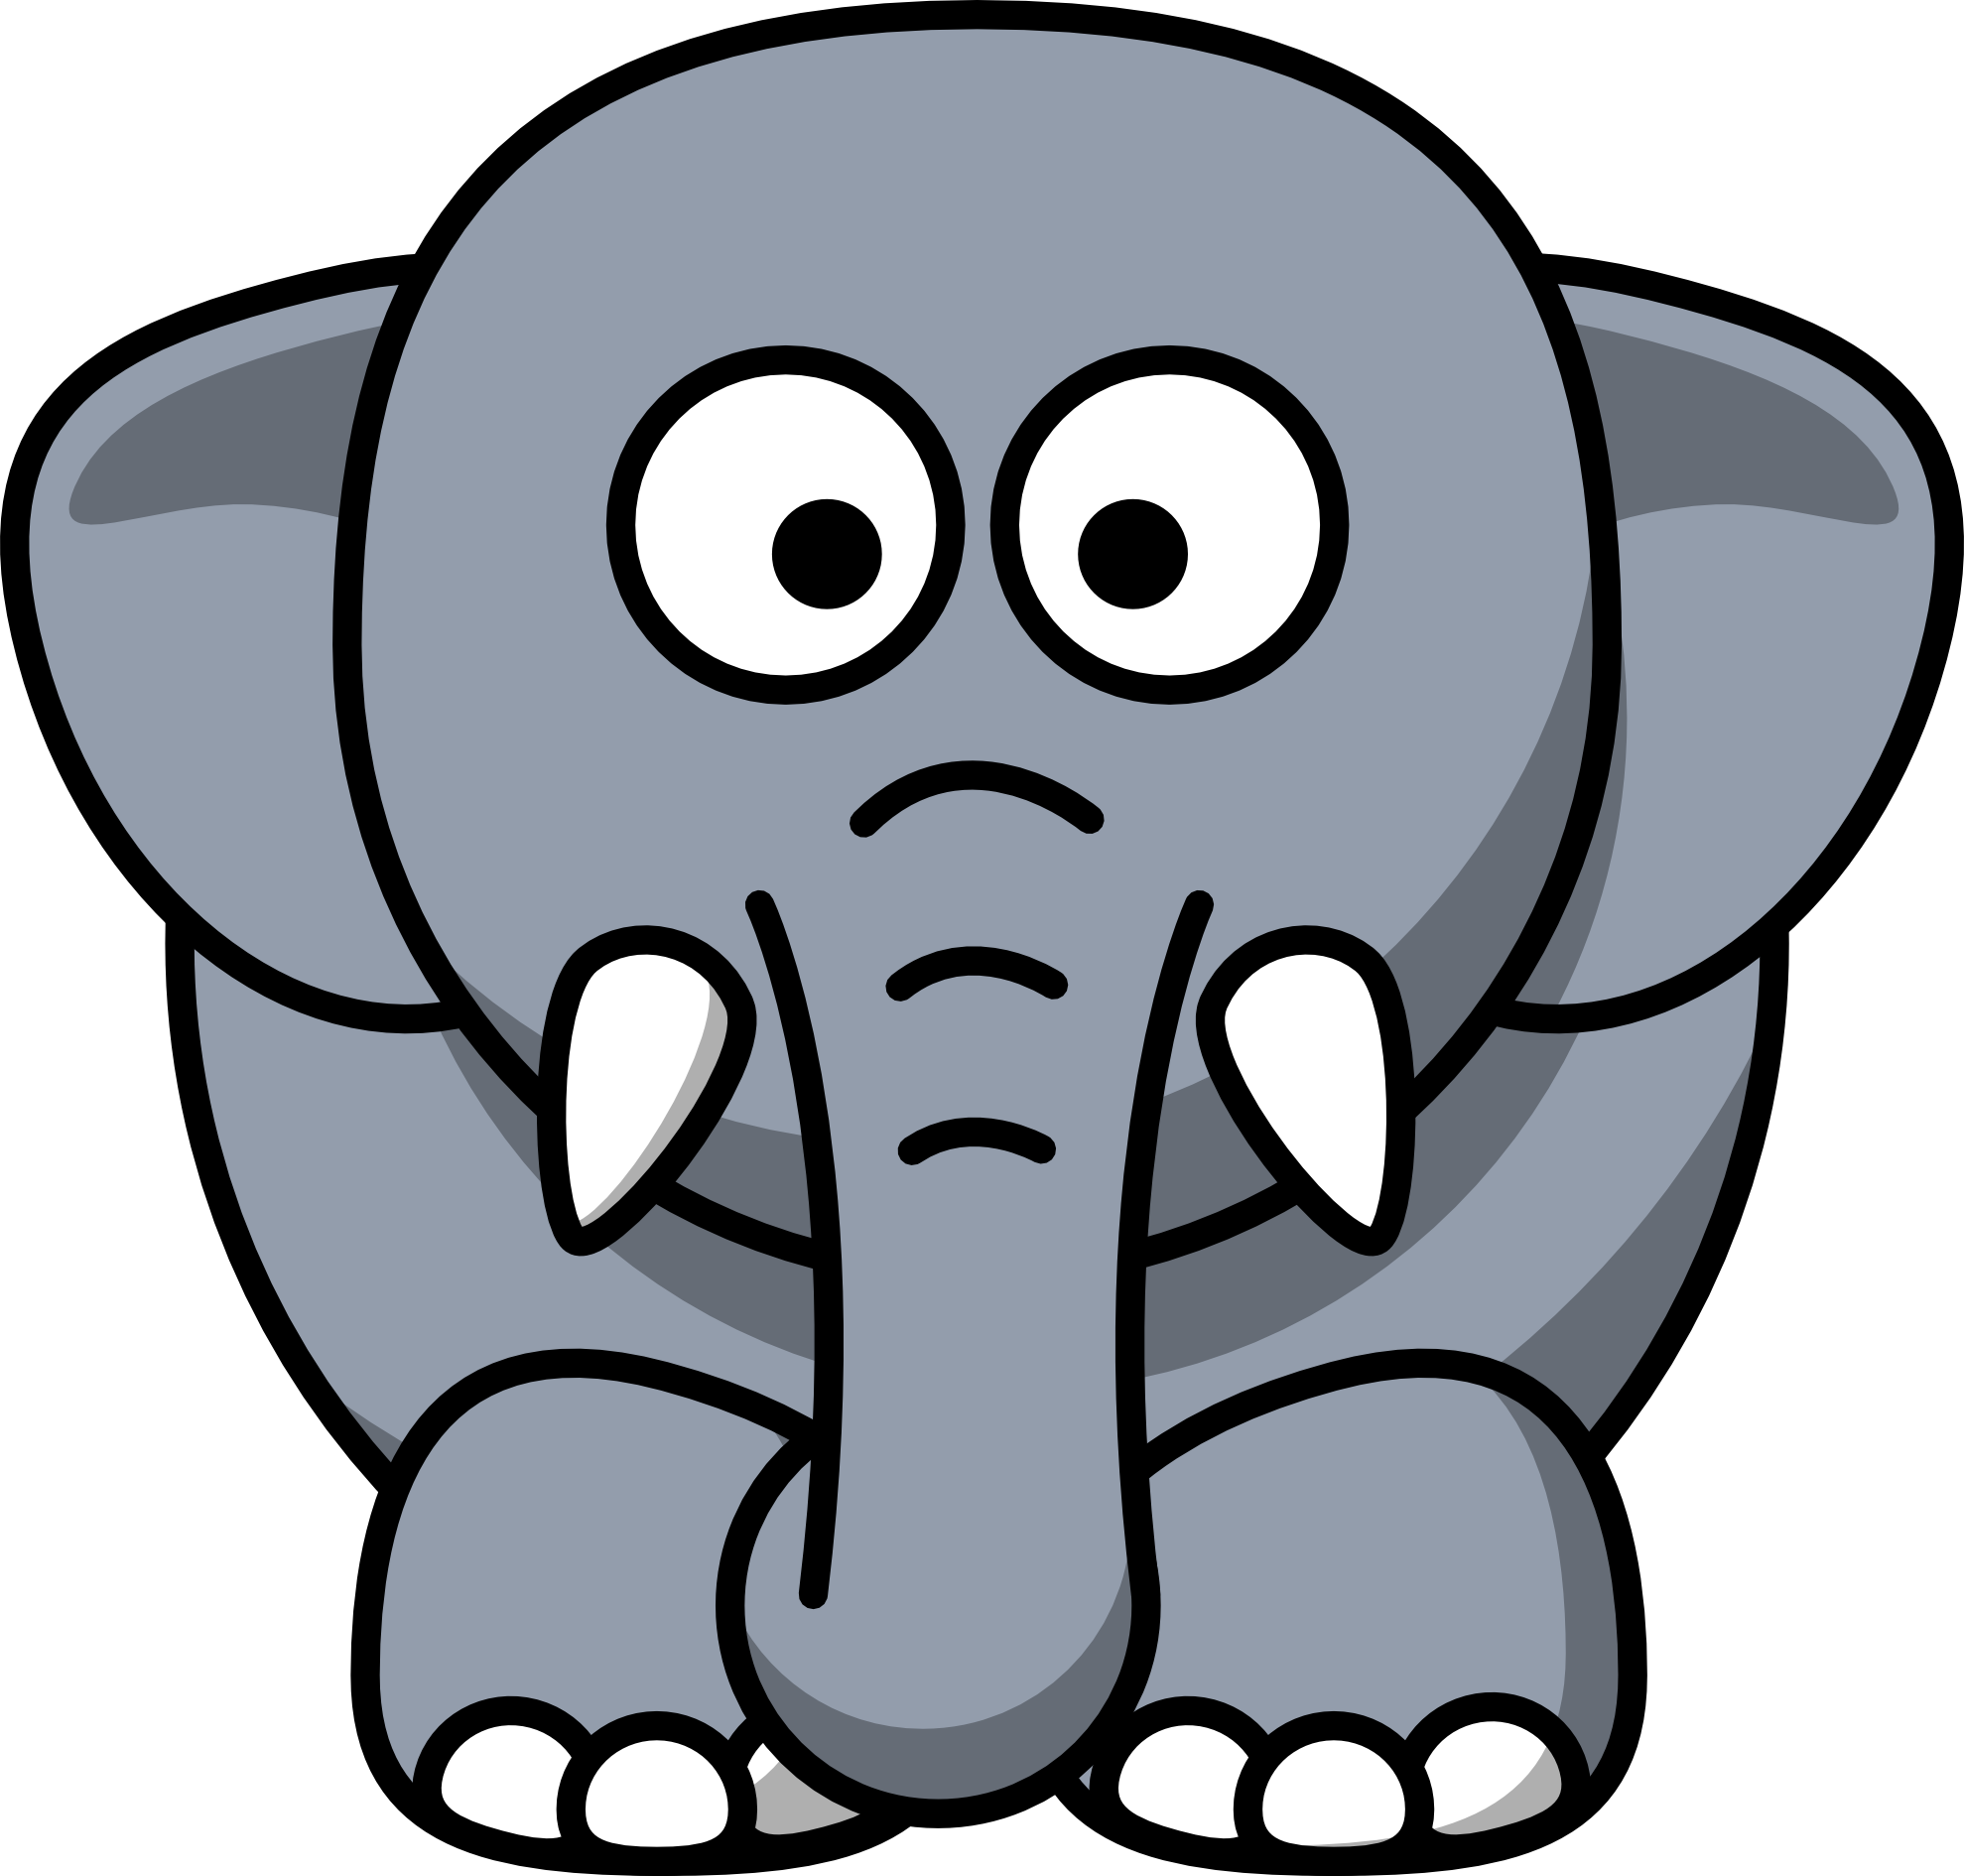 Elephant clip art easy. Getting back into working